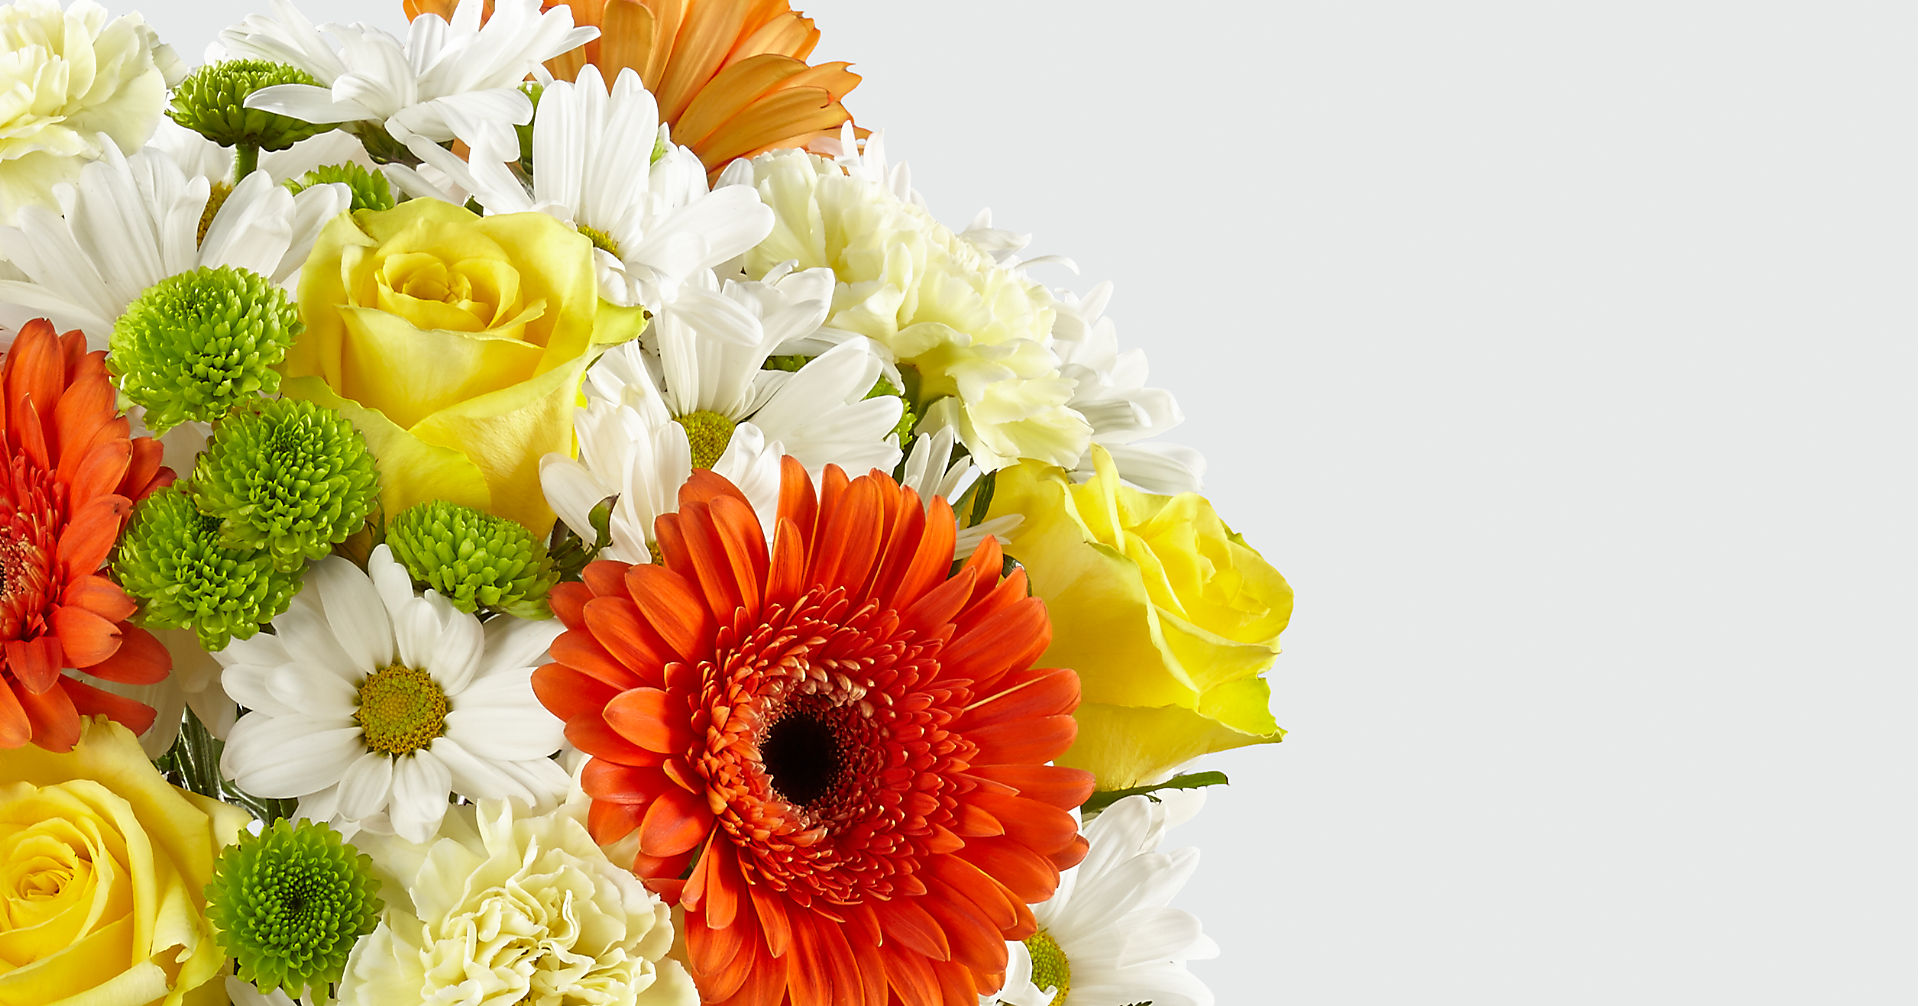 Happy Day Birthday™ Bouquet by Hallmark - VASE INCLUDED - Image 2 Of 2